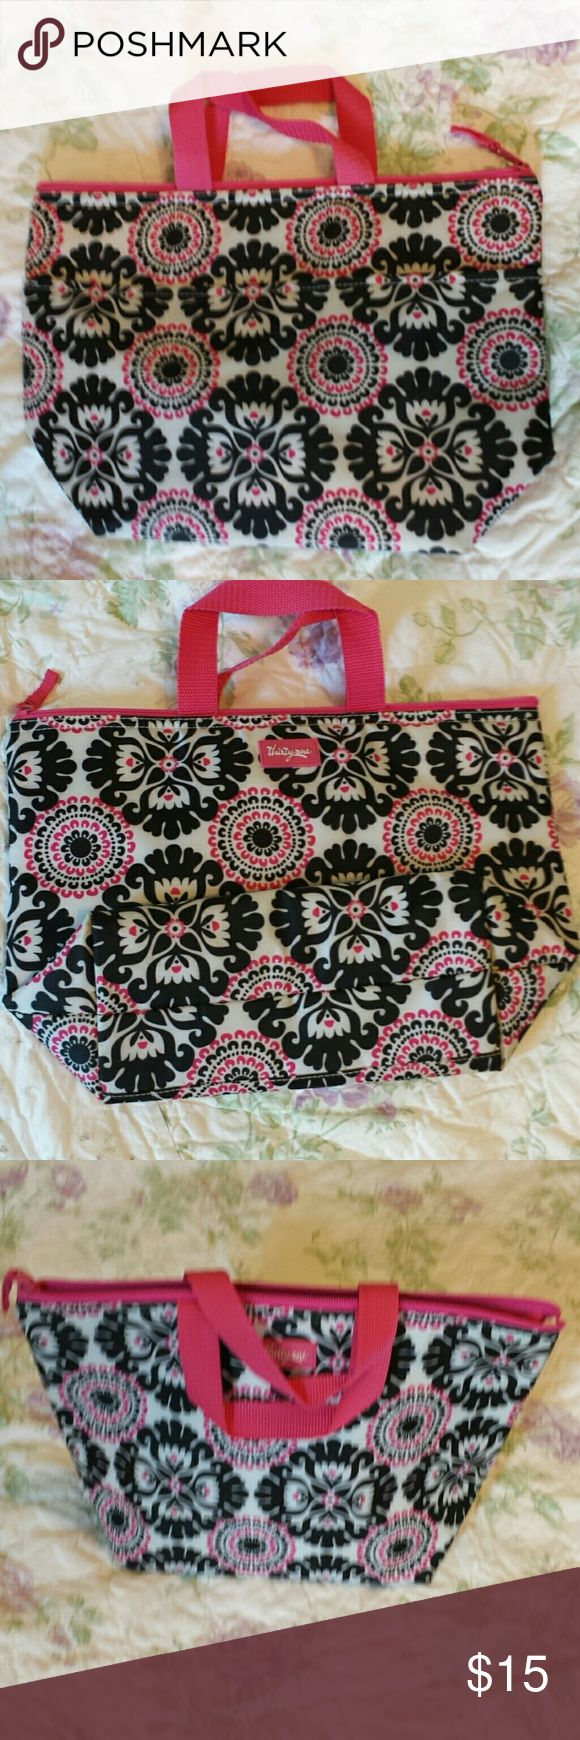 Thirty one thermal lunch bag. Good condition.  Cleaned with sanitizing wipes. thirty one  Bags Mini Bags